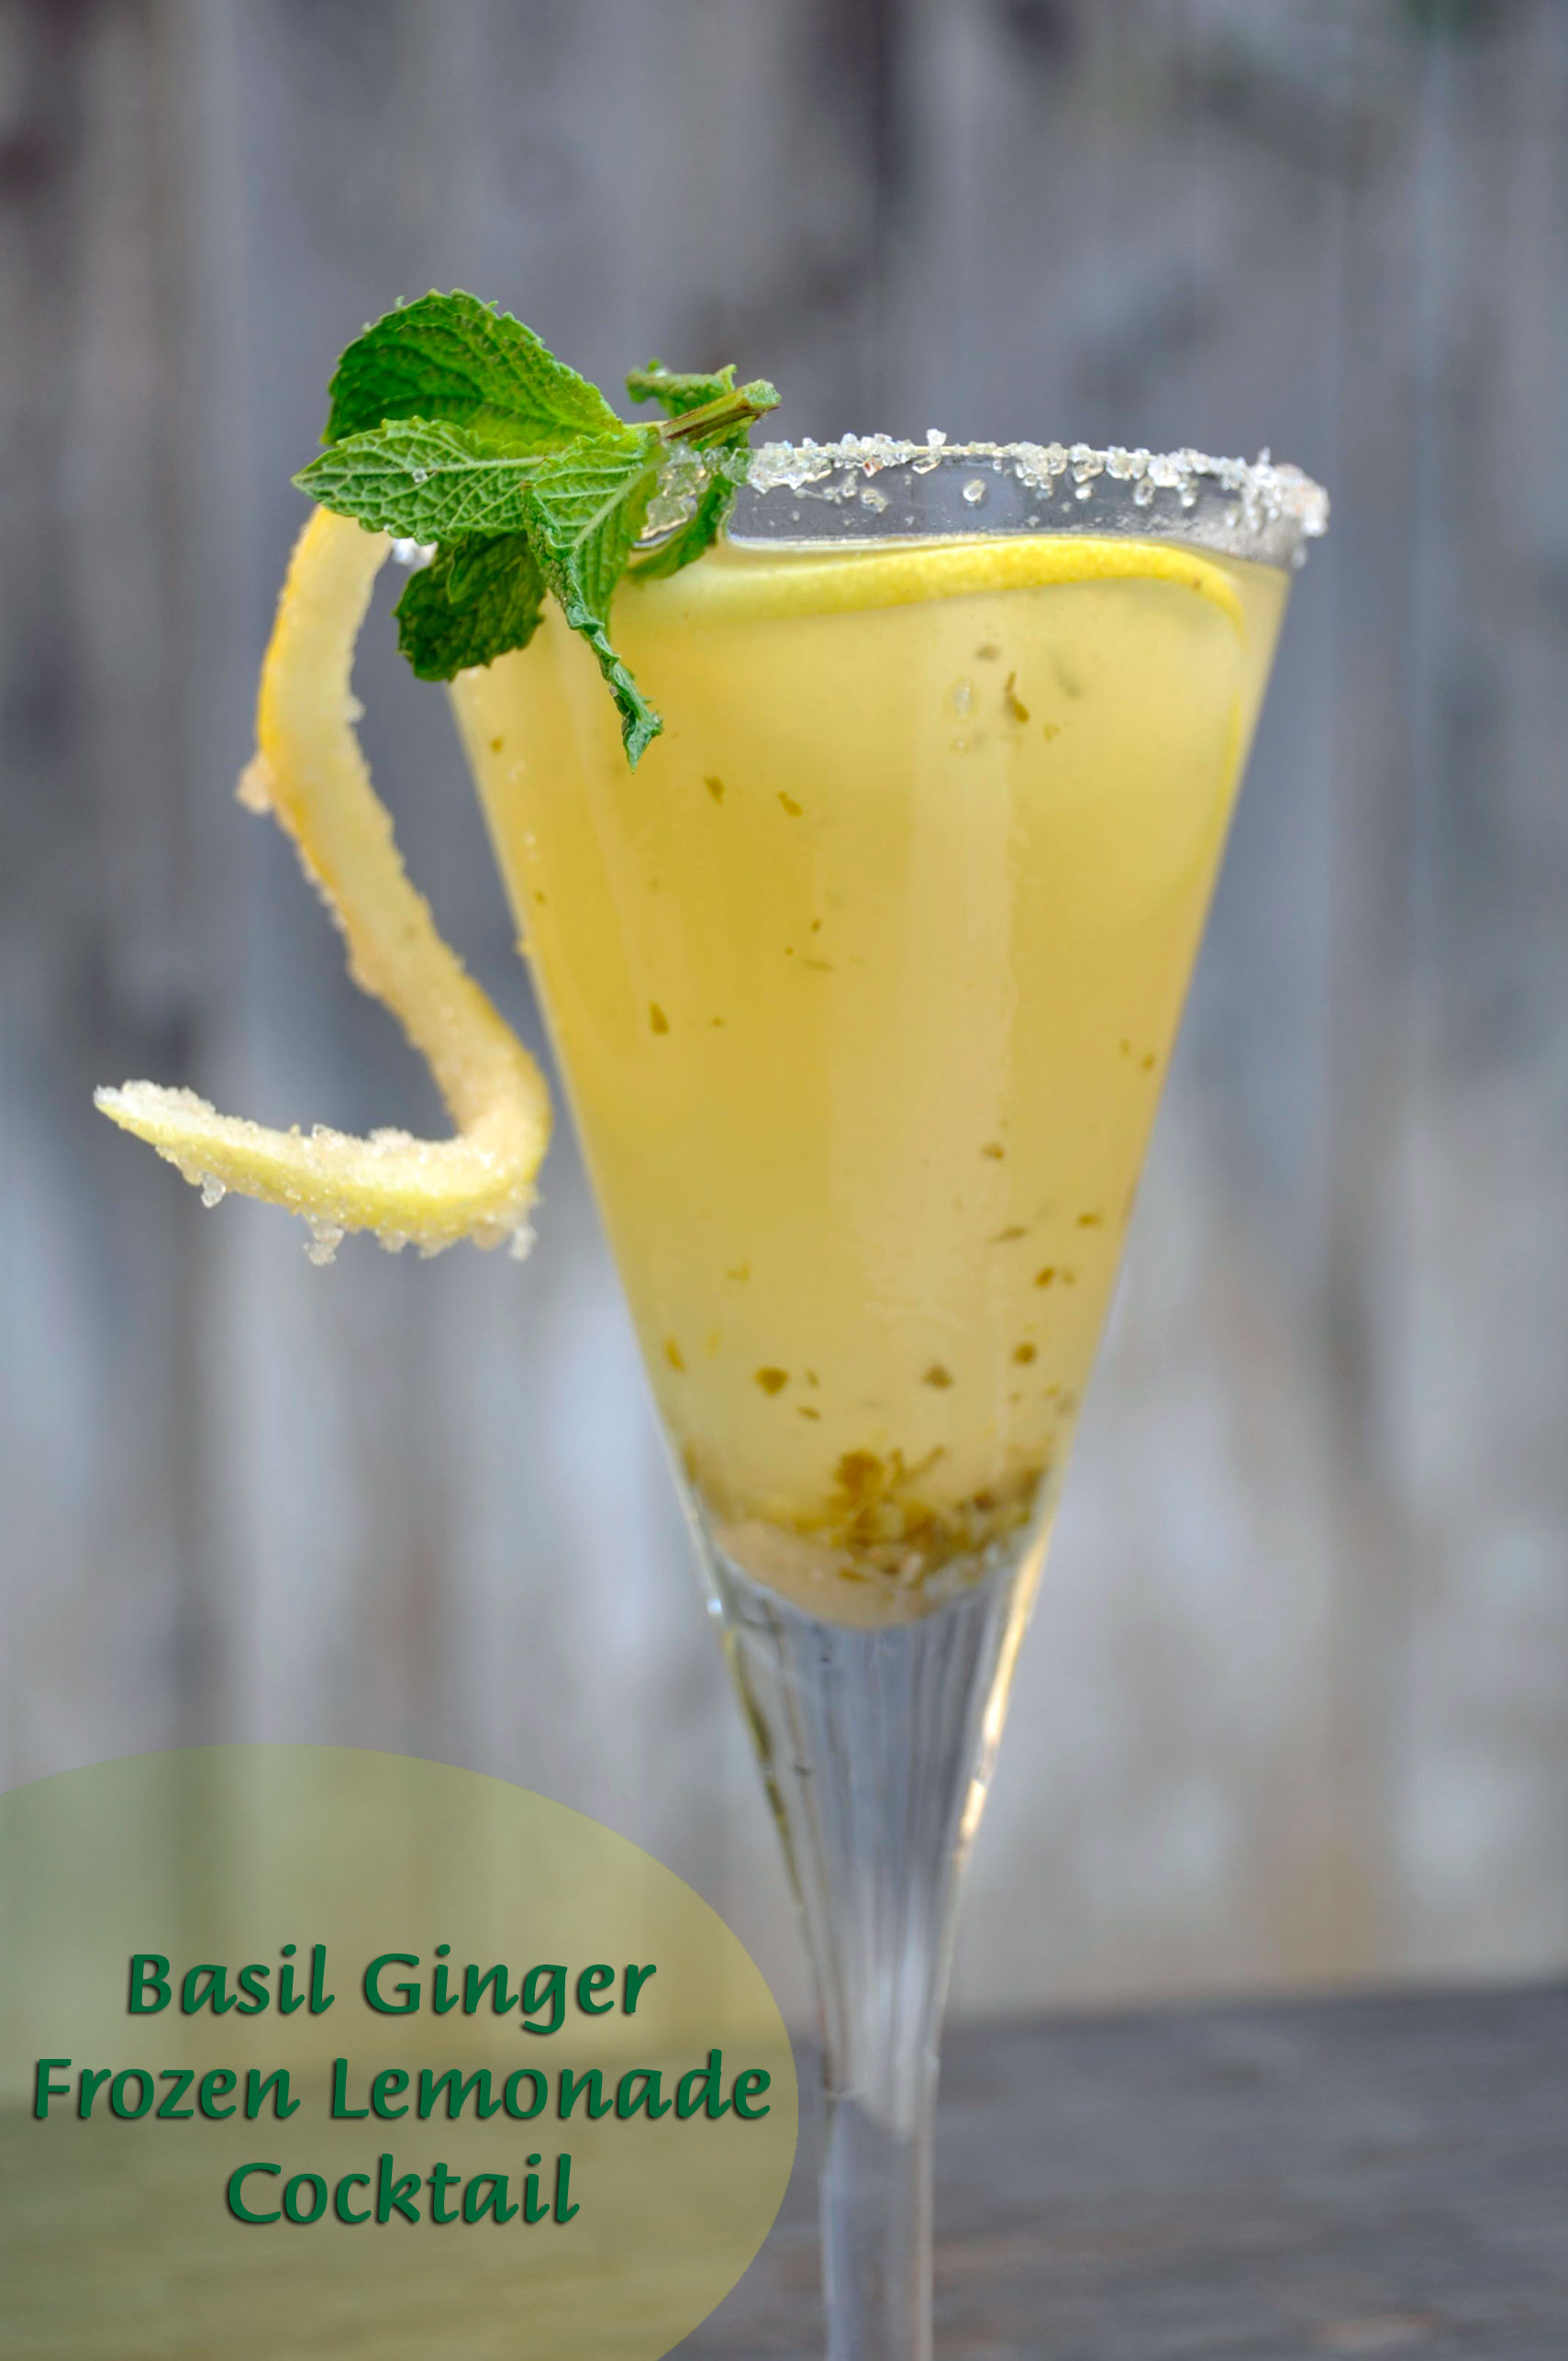 Recipe: Basil Ginger Frozen Lemonade Cocktail